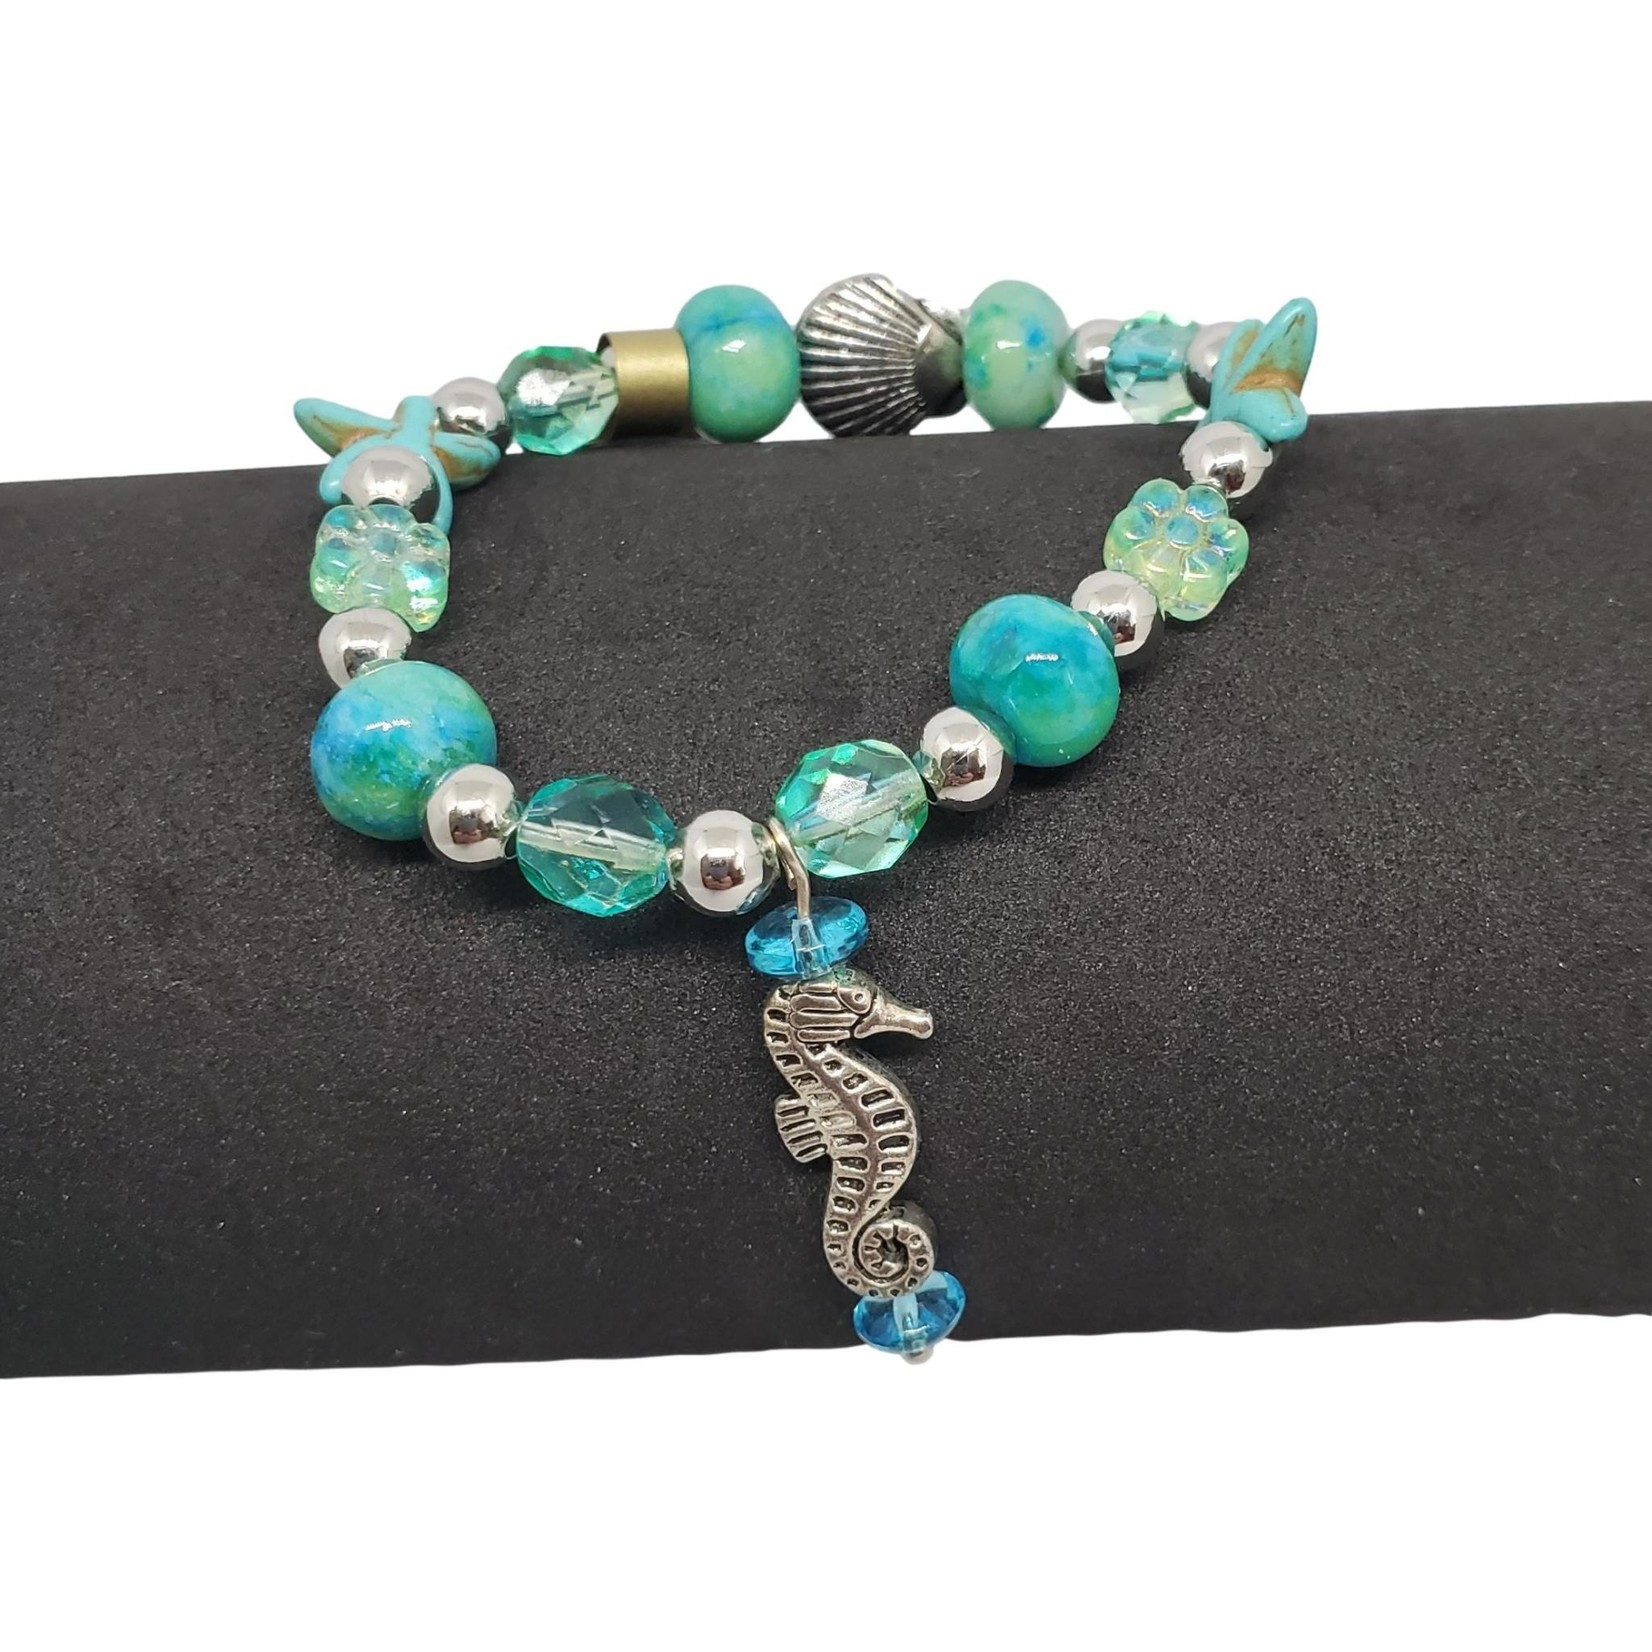 Jewellery by Deborah Young-Groves Ocean-Themed Beaded Bracelet with Seahorse